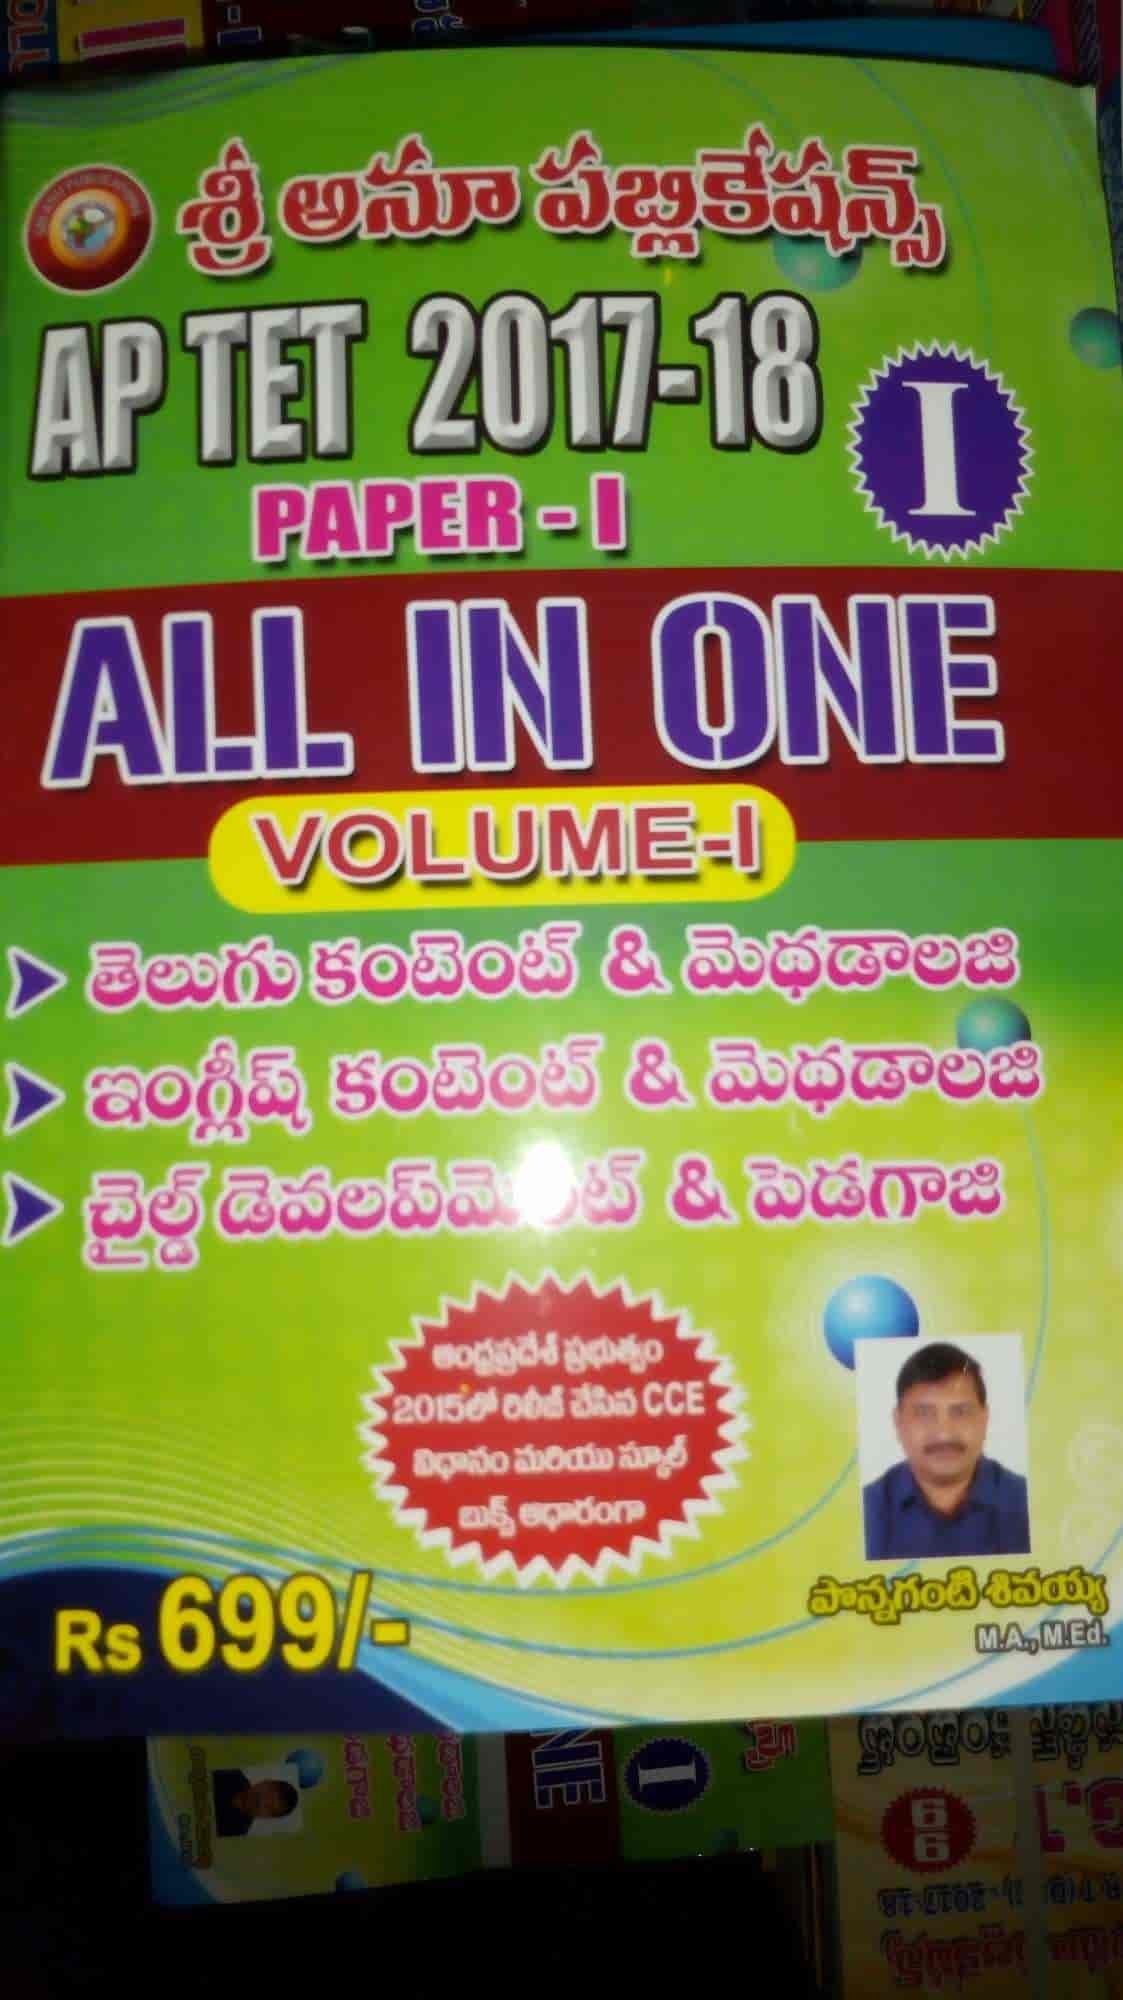 Sri Anu Publications, Machavaram - Book Publishers in Vijayawada